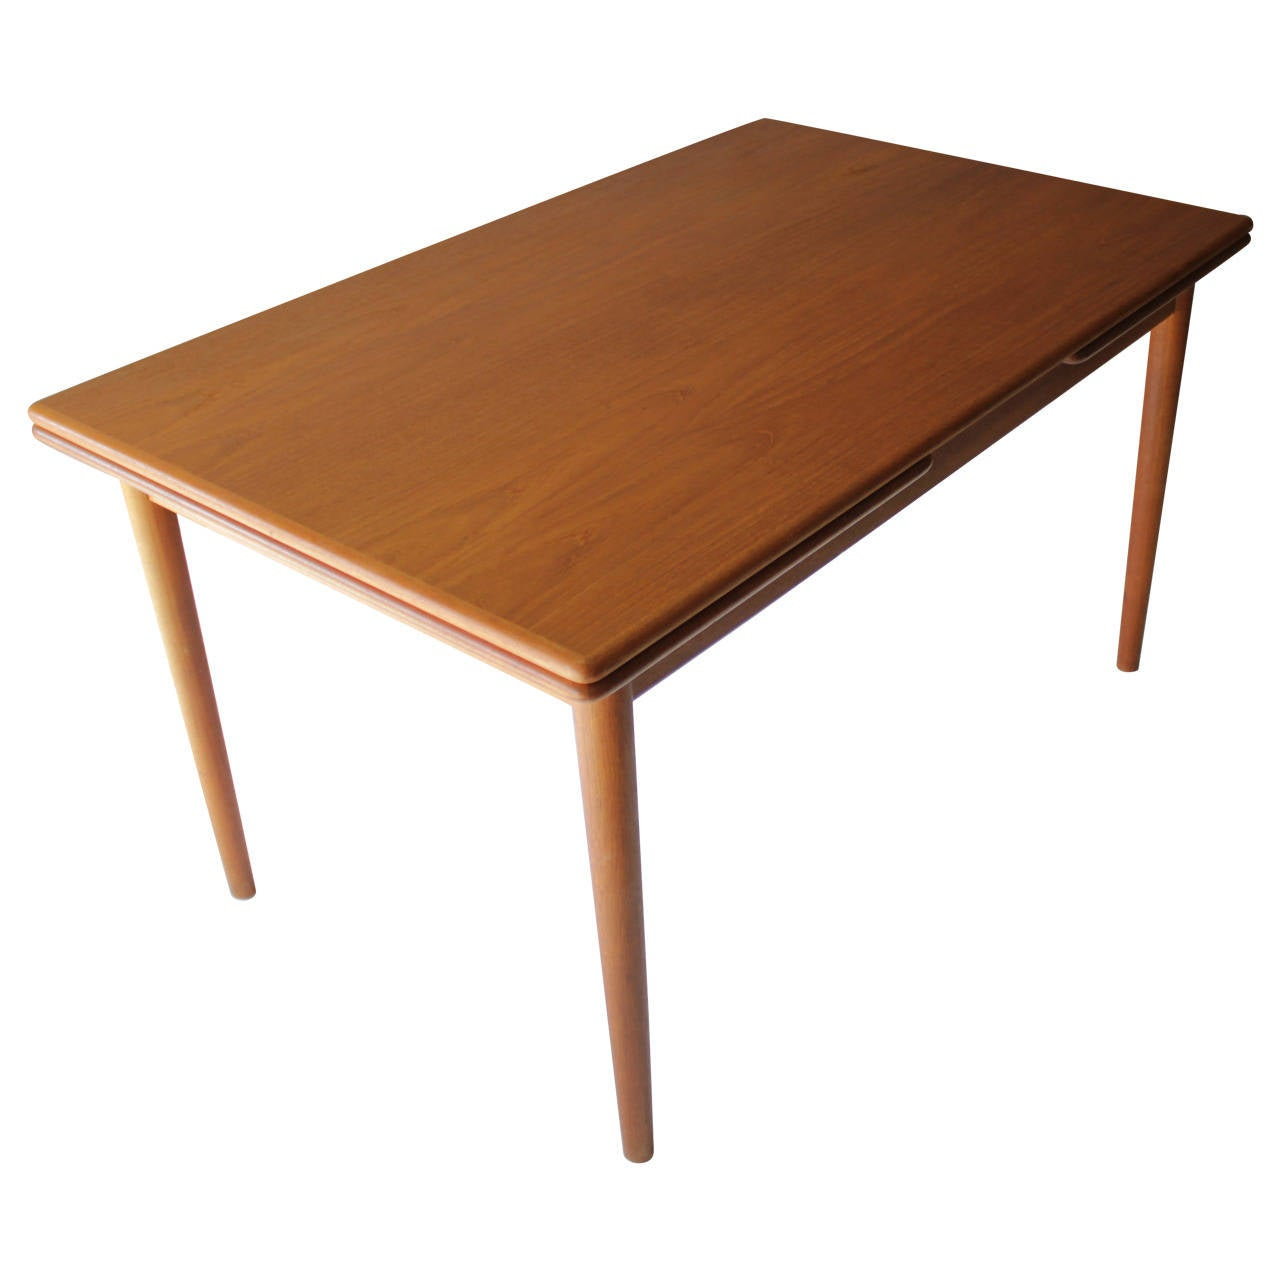 Teak Dining Table Sale Home Design Mannahattaus : 2257902l from www.mannahatta.us size 1280 x 1280 jpeg 59kB